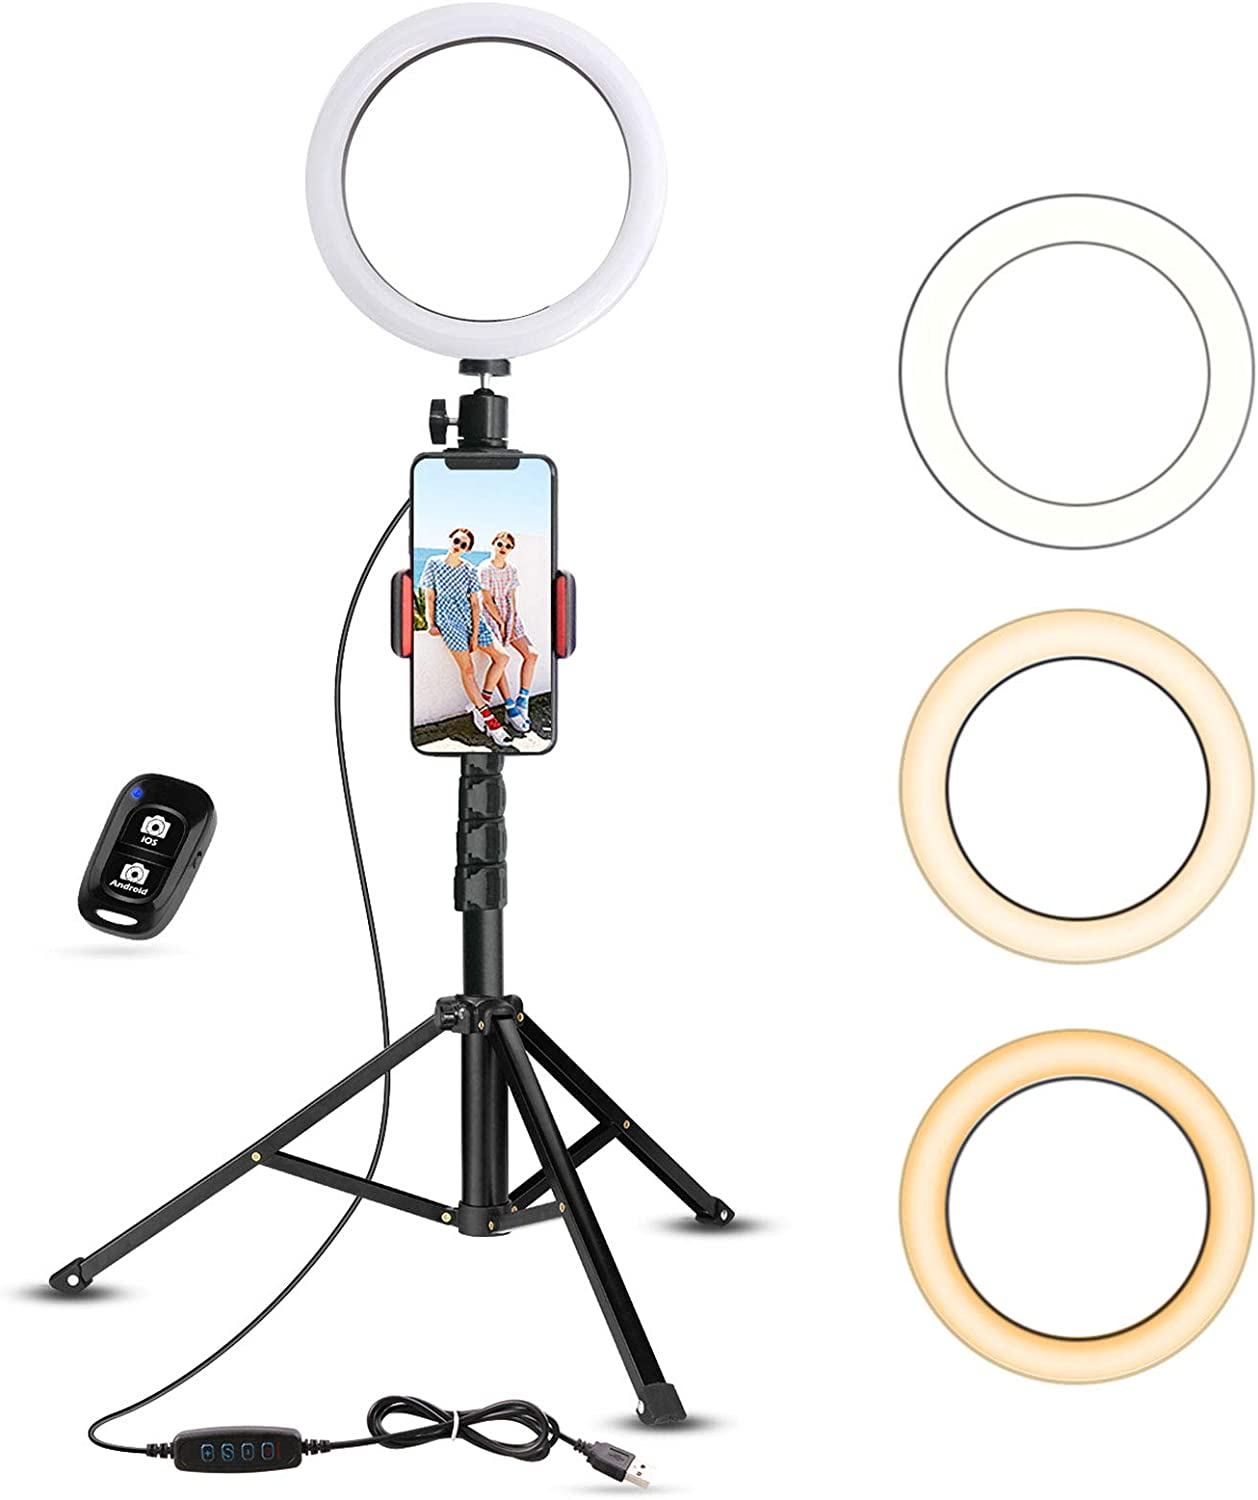 Amazon.com: Selfie Ring Light with Tripod Stand & Cell Phone Holder for Live Stream/Makeup, UBeesize Mini Led Camera Ringlight for YouTube Video/Photography: Camera & Photo